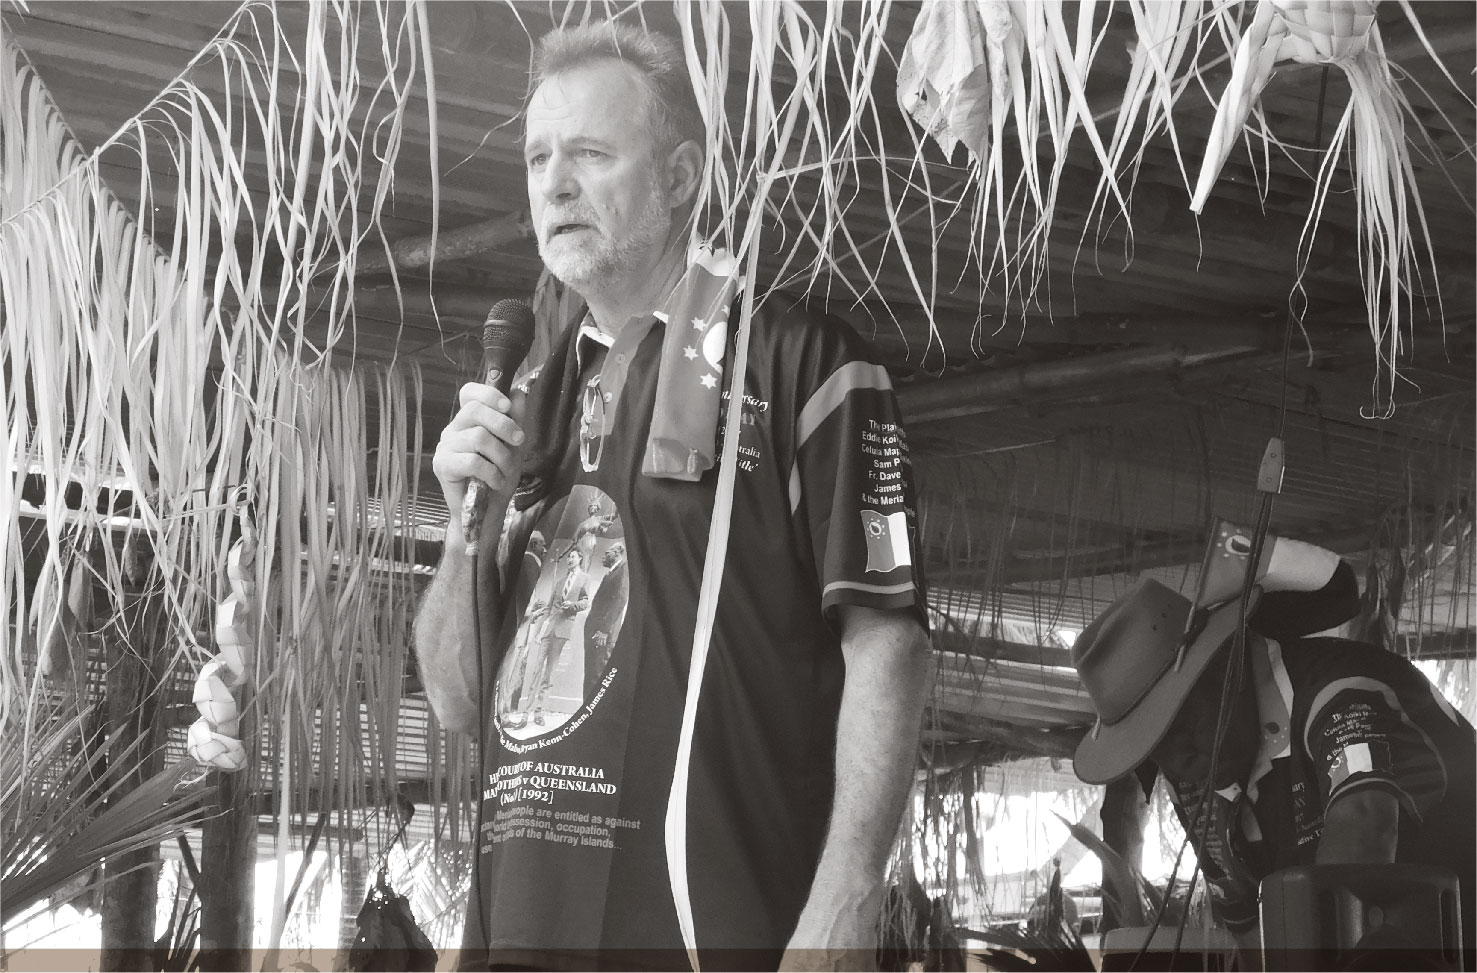 a photo of INDIGENOUS AFFAIRS MINISTER SENATOR THE HON. NIGEL SCULLION GIVING A SPEECH AT THE MABO DECISION 25TH ANNIVERSARY CELEBRATIONS ON MER.